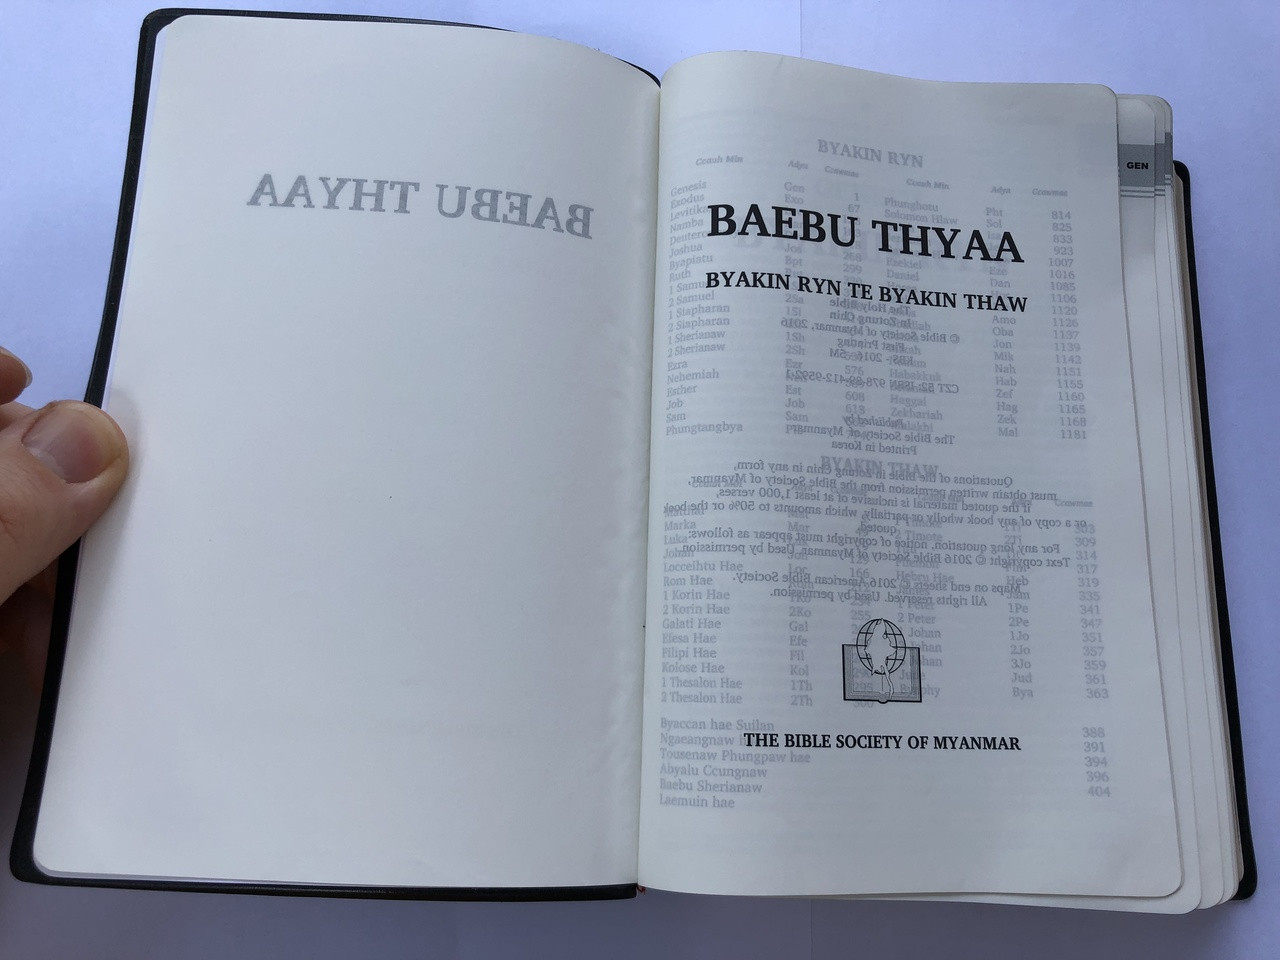 Baebu Thyaa / The Holy Bible in Zotung Chin language / Black vinyl bound /  Byakin Ryn Te Byakin Thaw / Old and New Testaments / Bible Society of